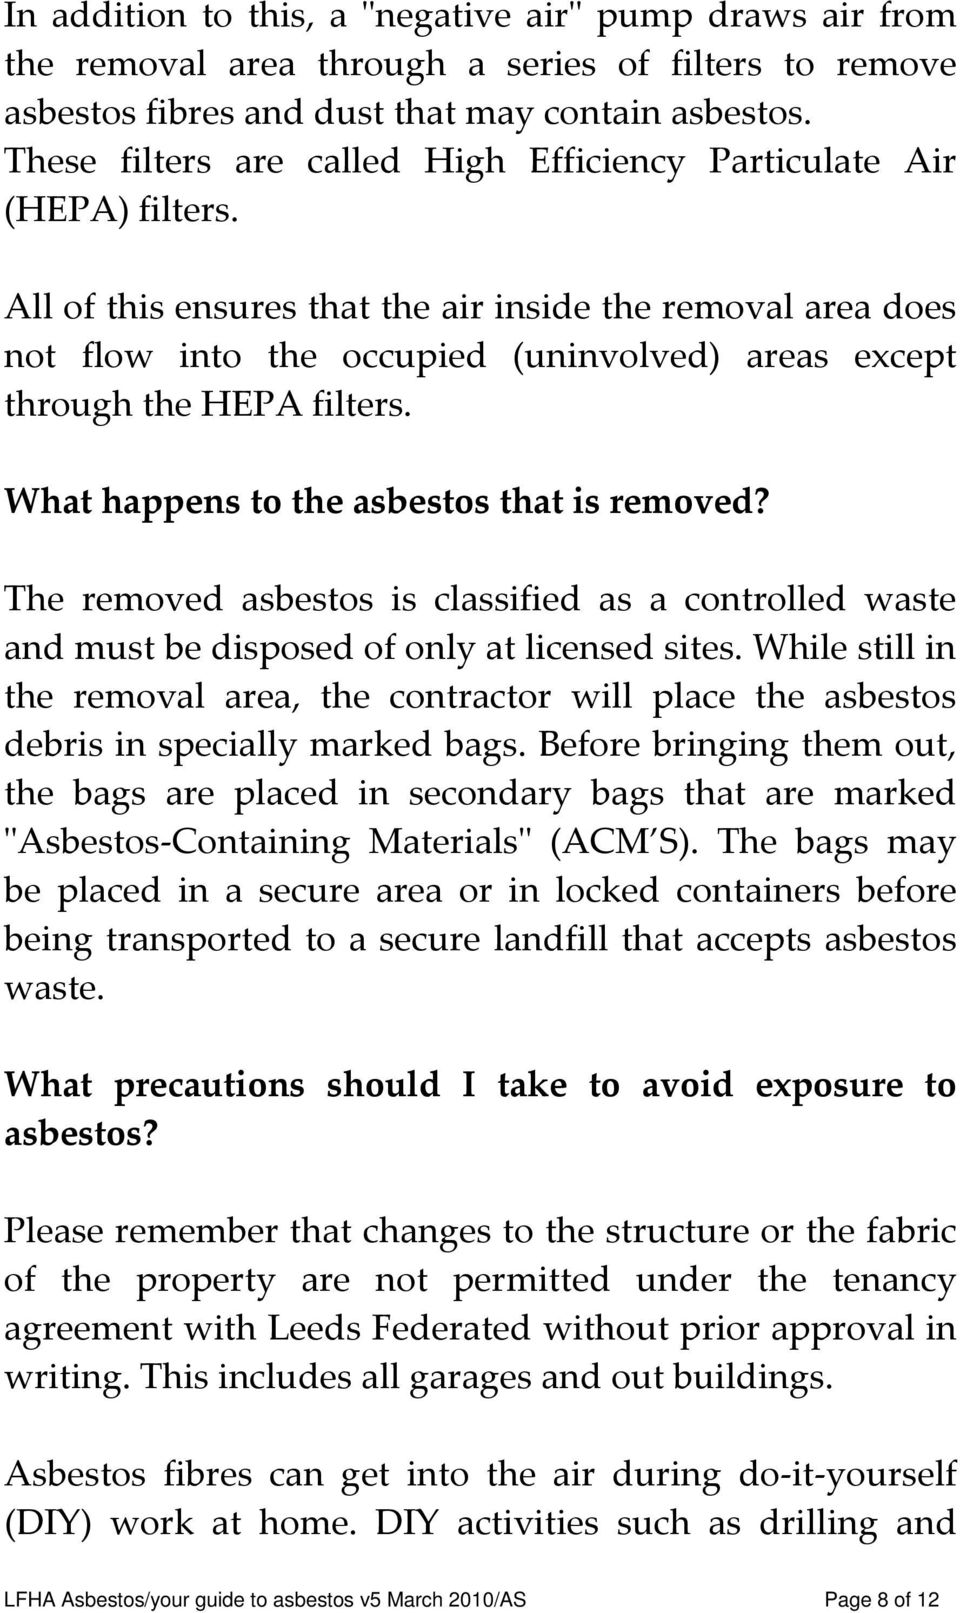 All of this ensures that the air inside the removal area does not flow into the occupied (uninvolved) areas except through the HEPA filters. What happens to the asbestos that is removed?